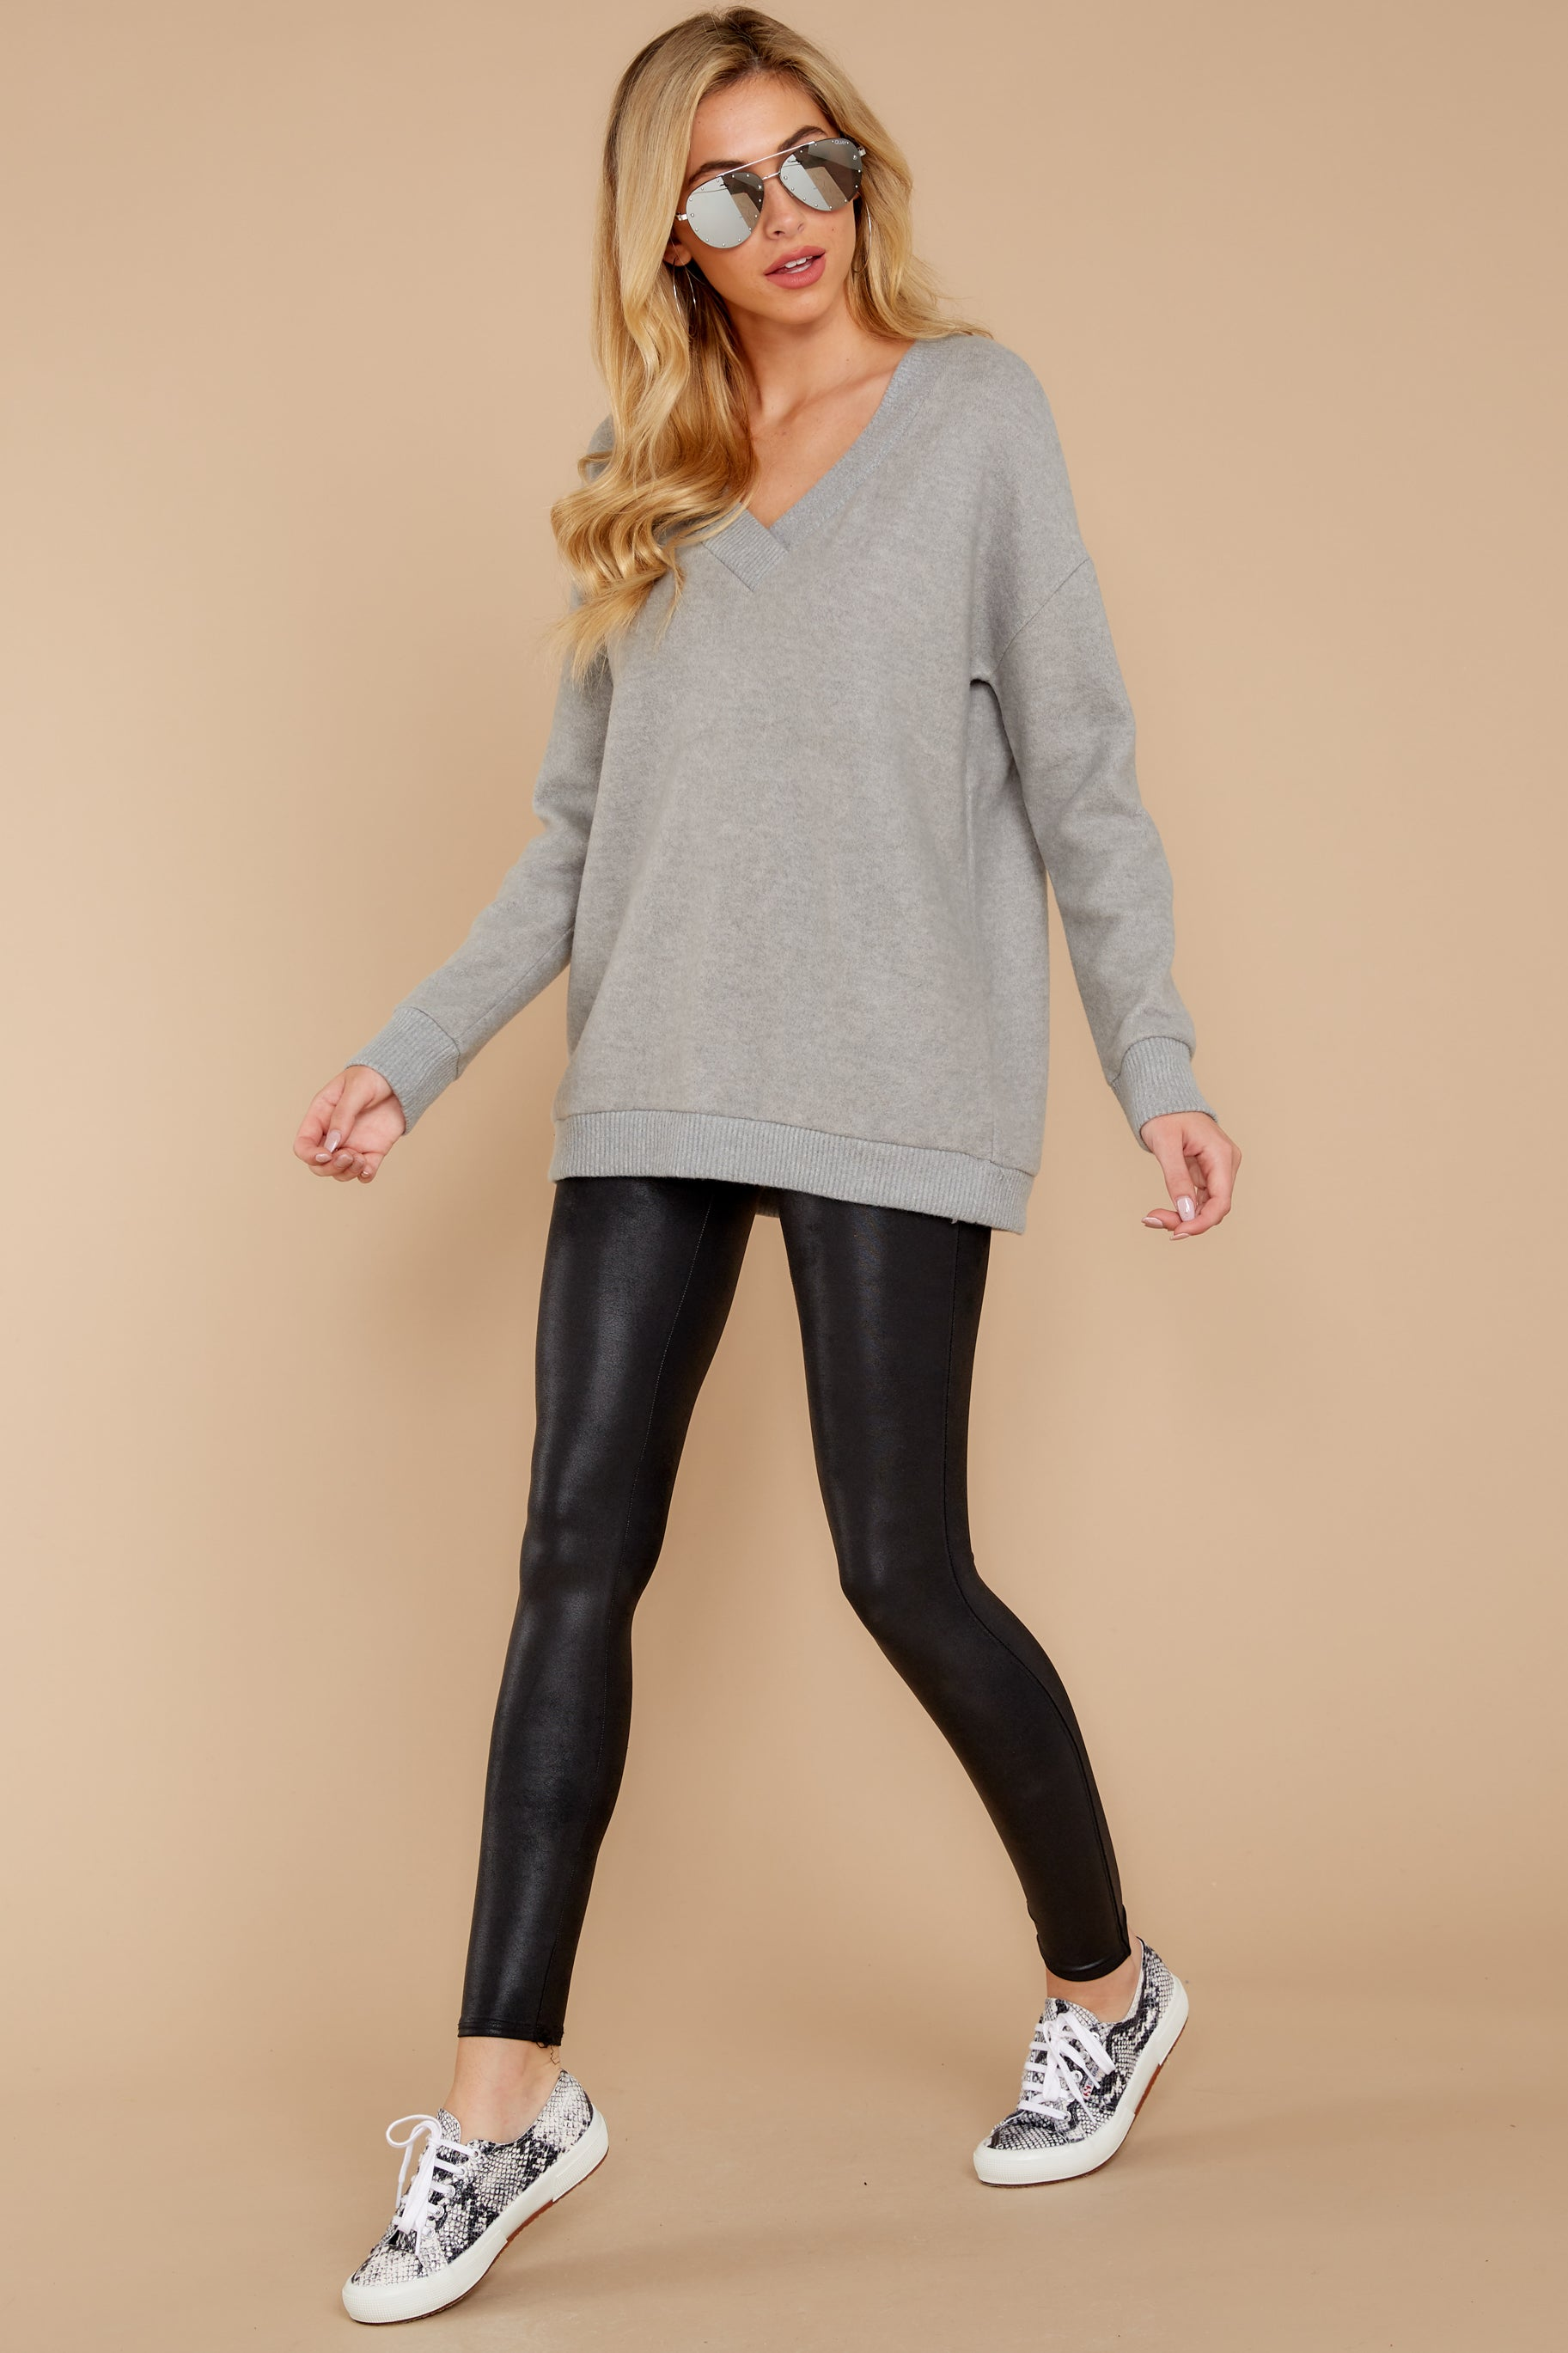 3 Soon Enough Heather Grey Sweater at reddressboutique.com